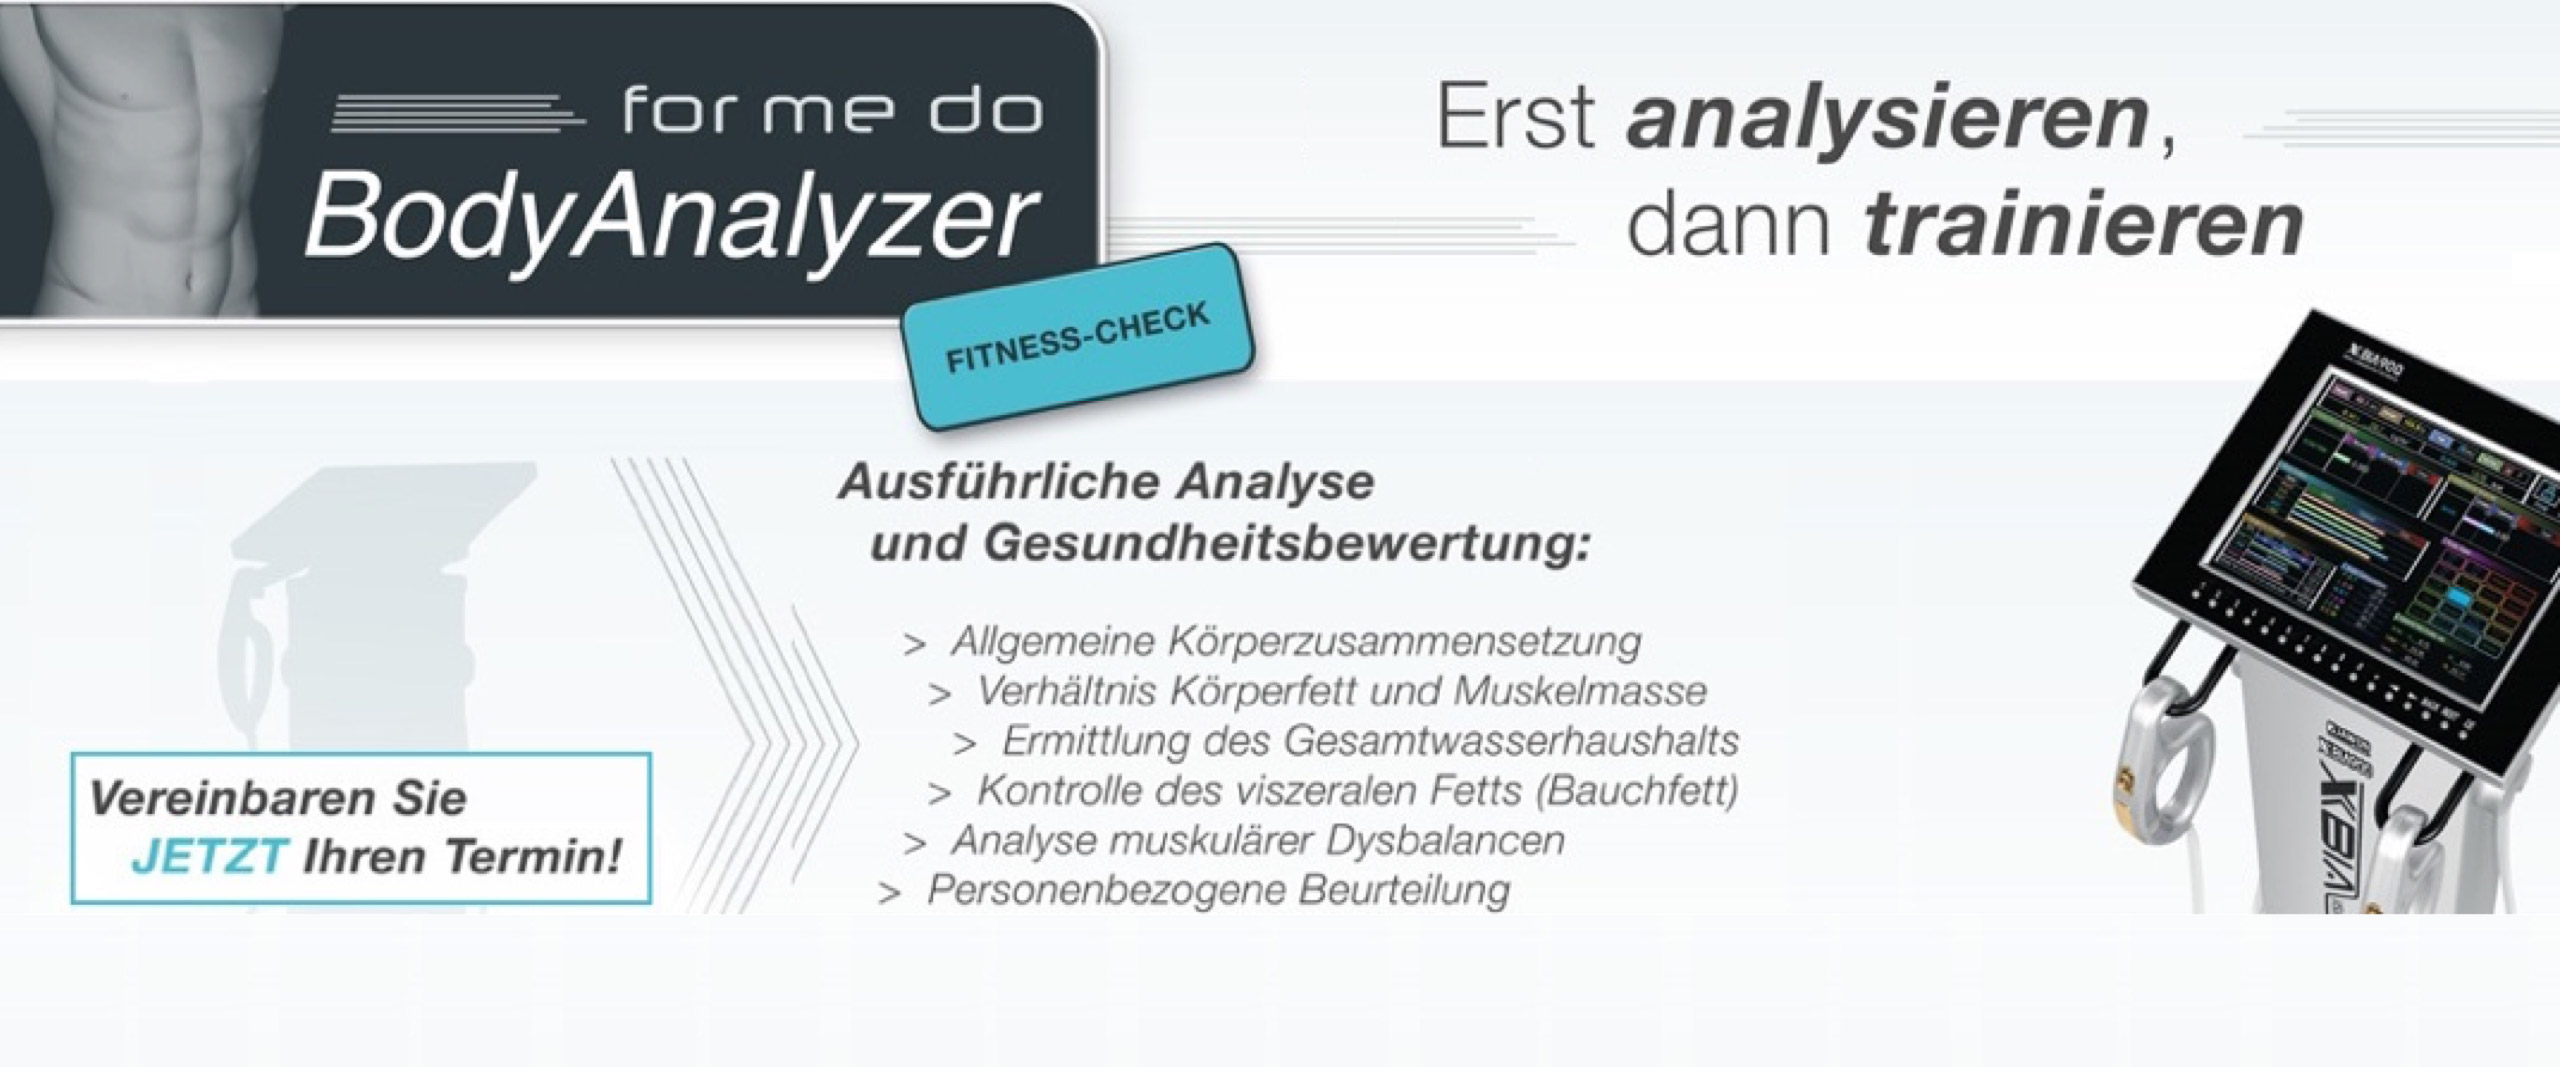 for me do BodyAnalyzer